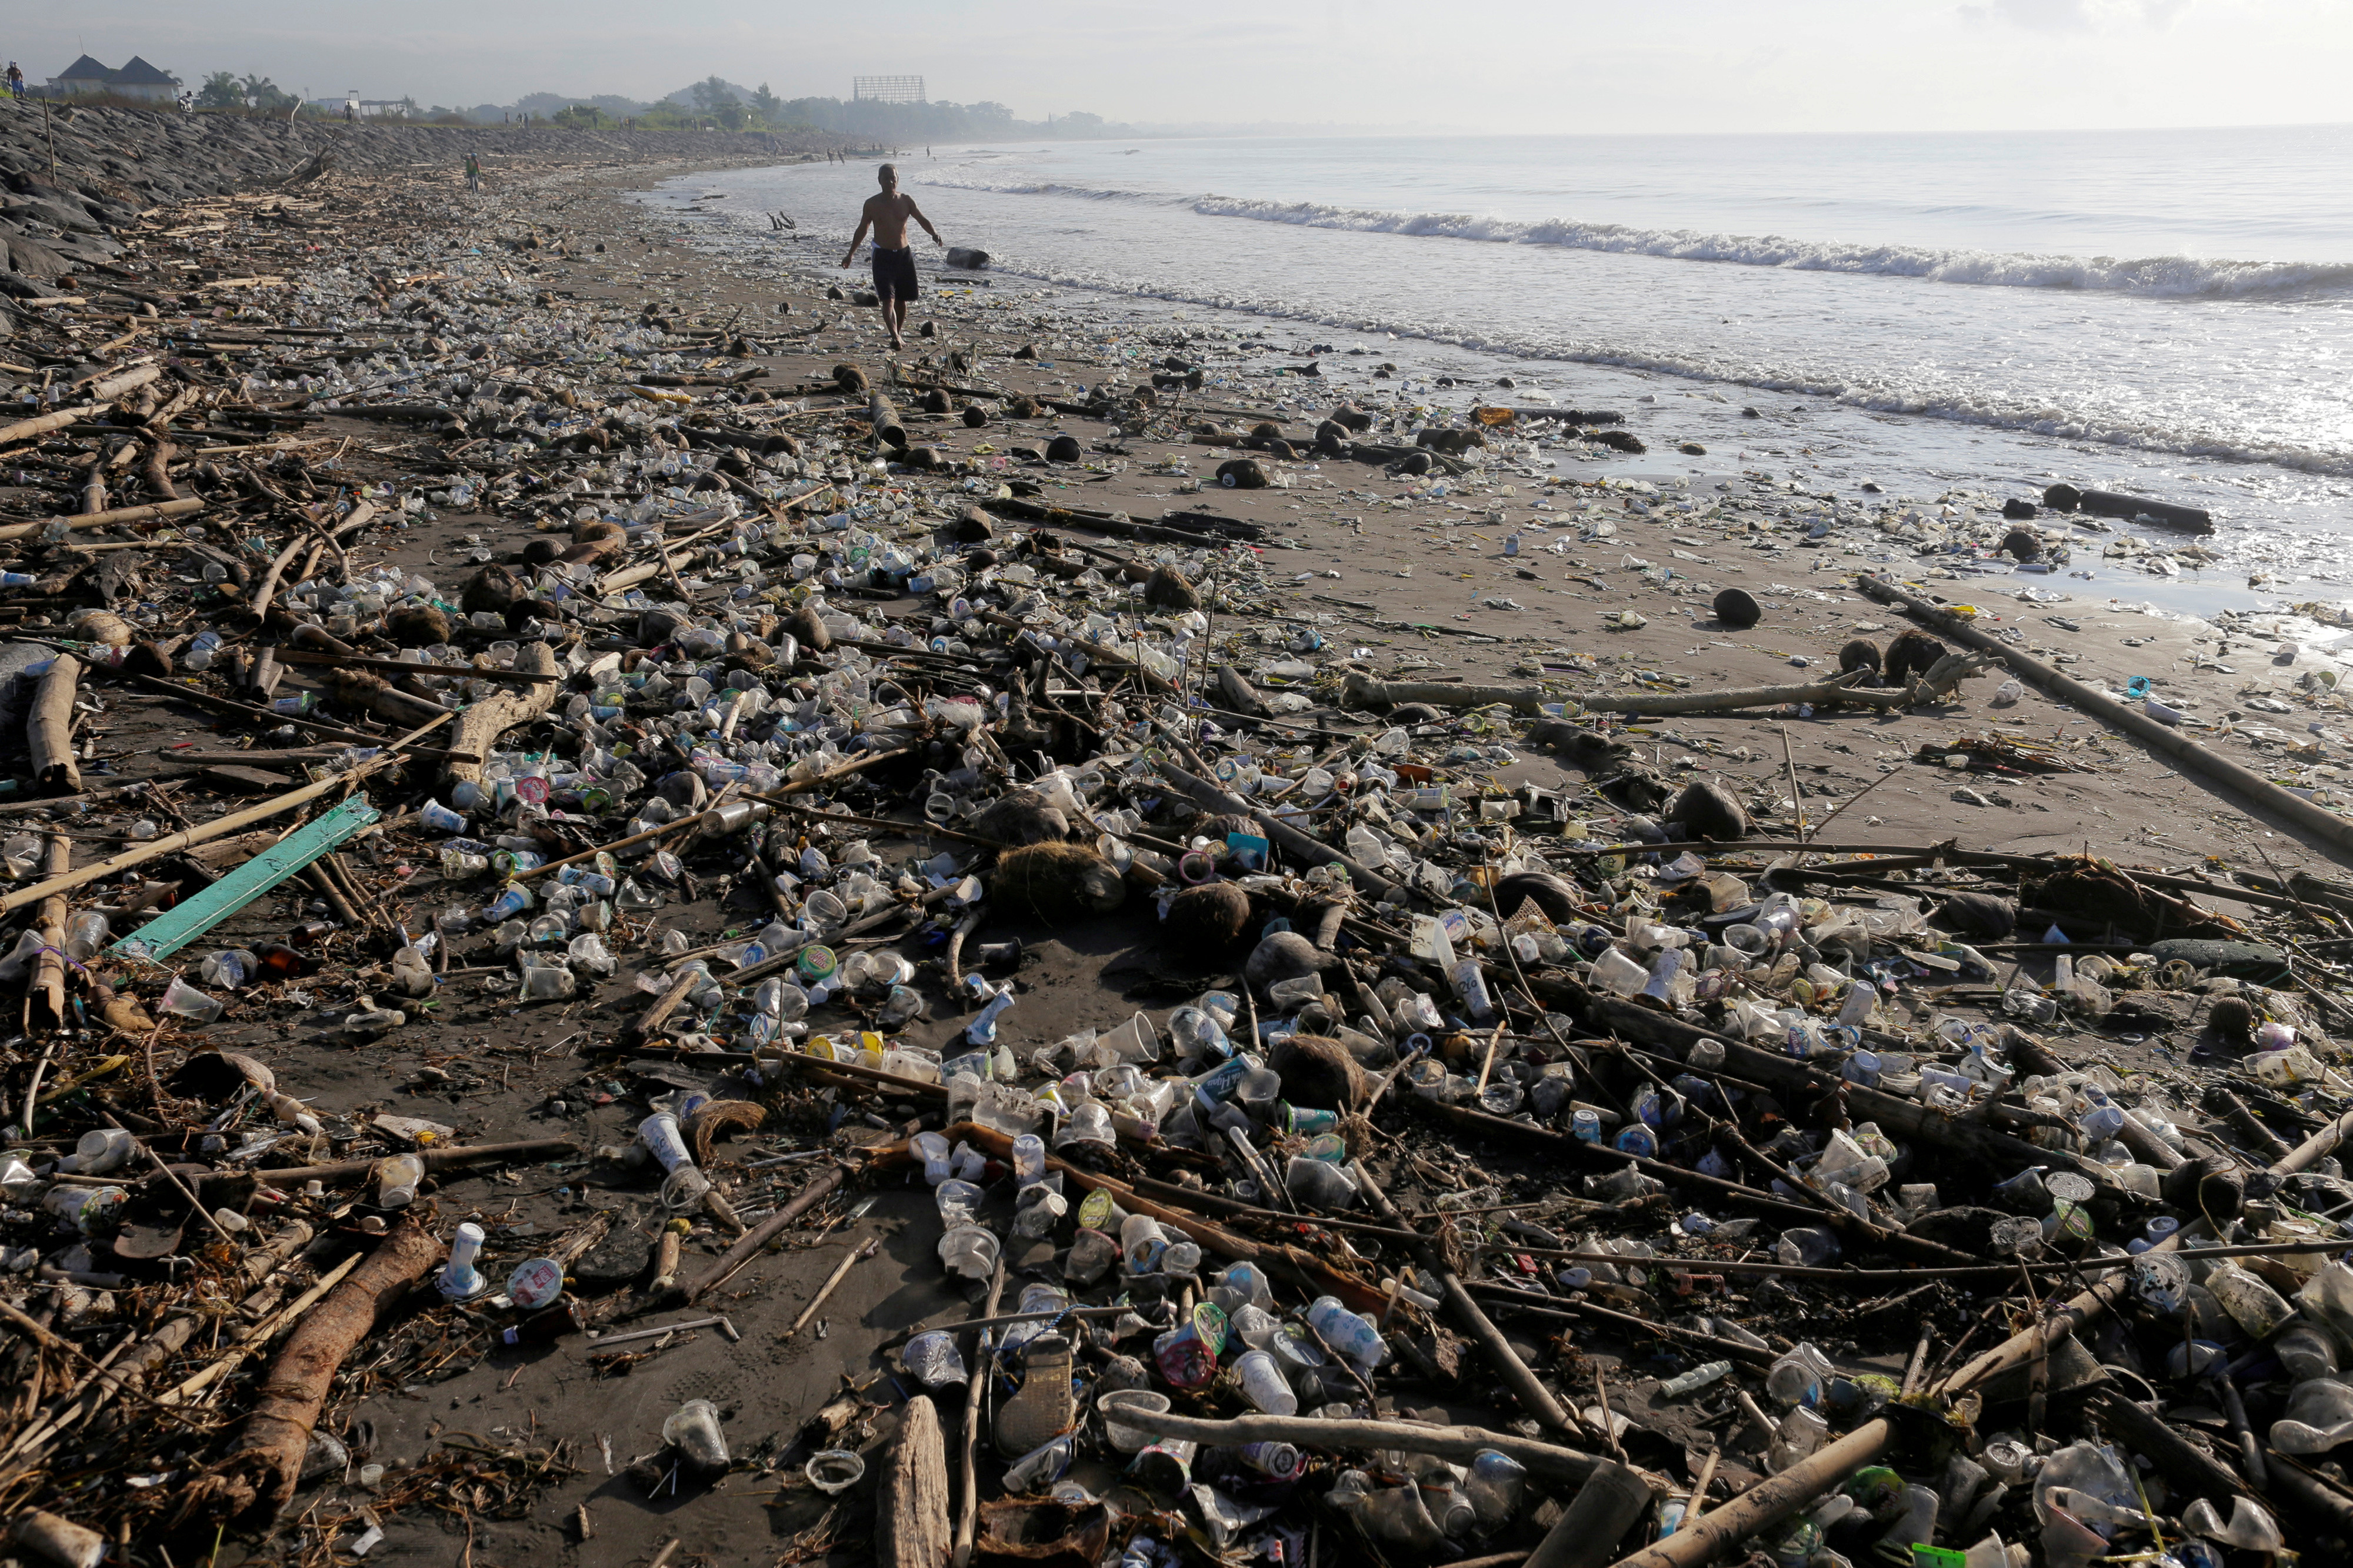 A local resident walks along a section of Matahari Terbit beach covered in plastic and other debris washed ashore by seasonal winds near Sanur, Bali, Indonesia April 11, 2018. REUTERS/Johannes P. Christo     TPX IMAGES OF THE DAY - RC1AF6081DA0